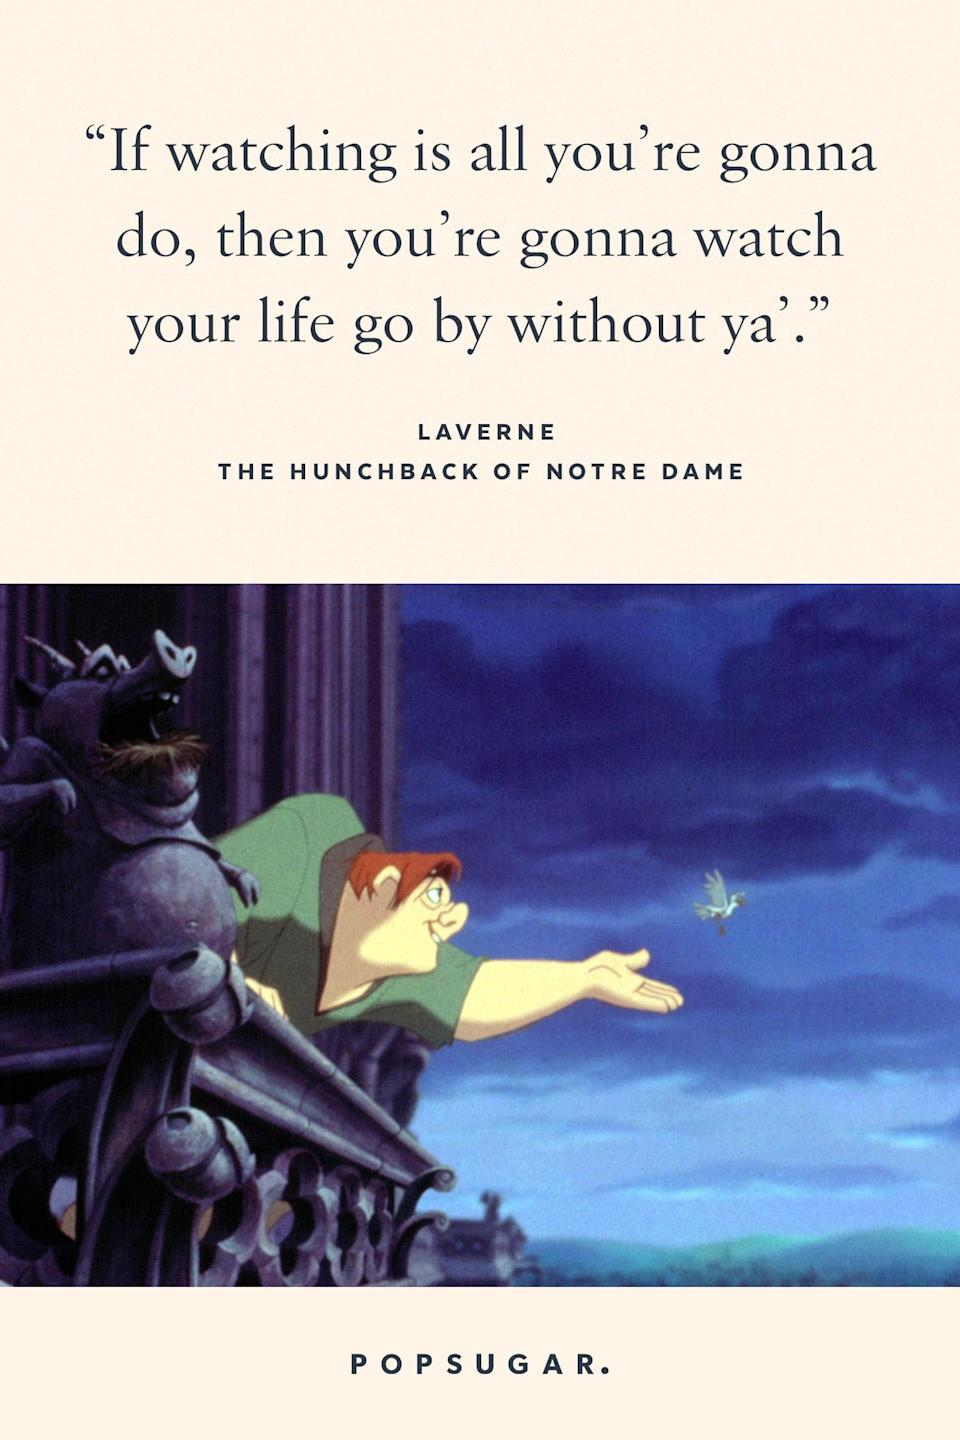 "<p>""If watching is all you're gonna do, then you're gonna watch your life go by without ya."" - Laverne, <b>The Hunchback of Notre Dame</b></p>"